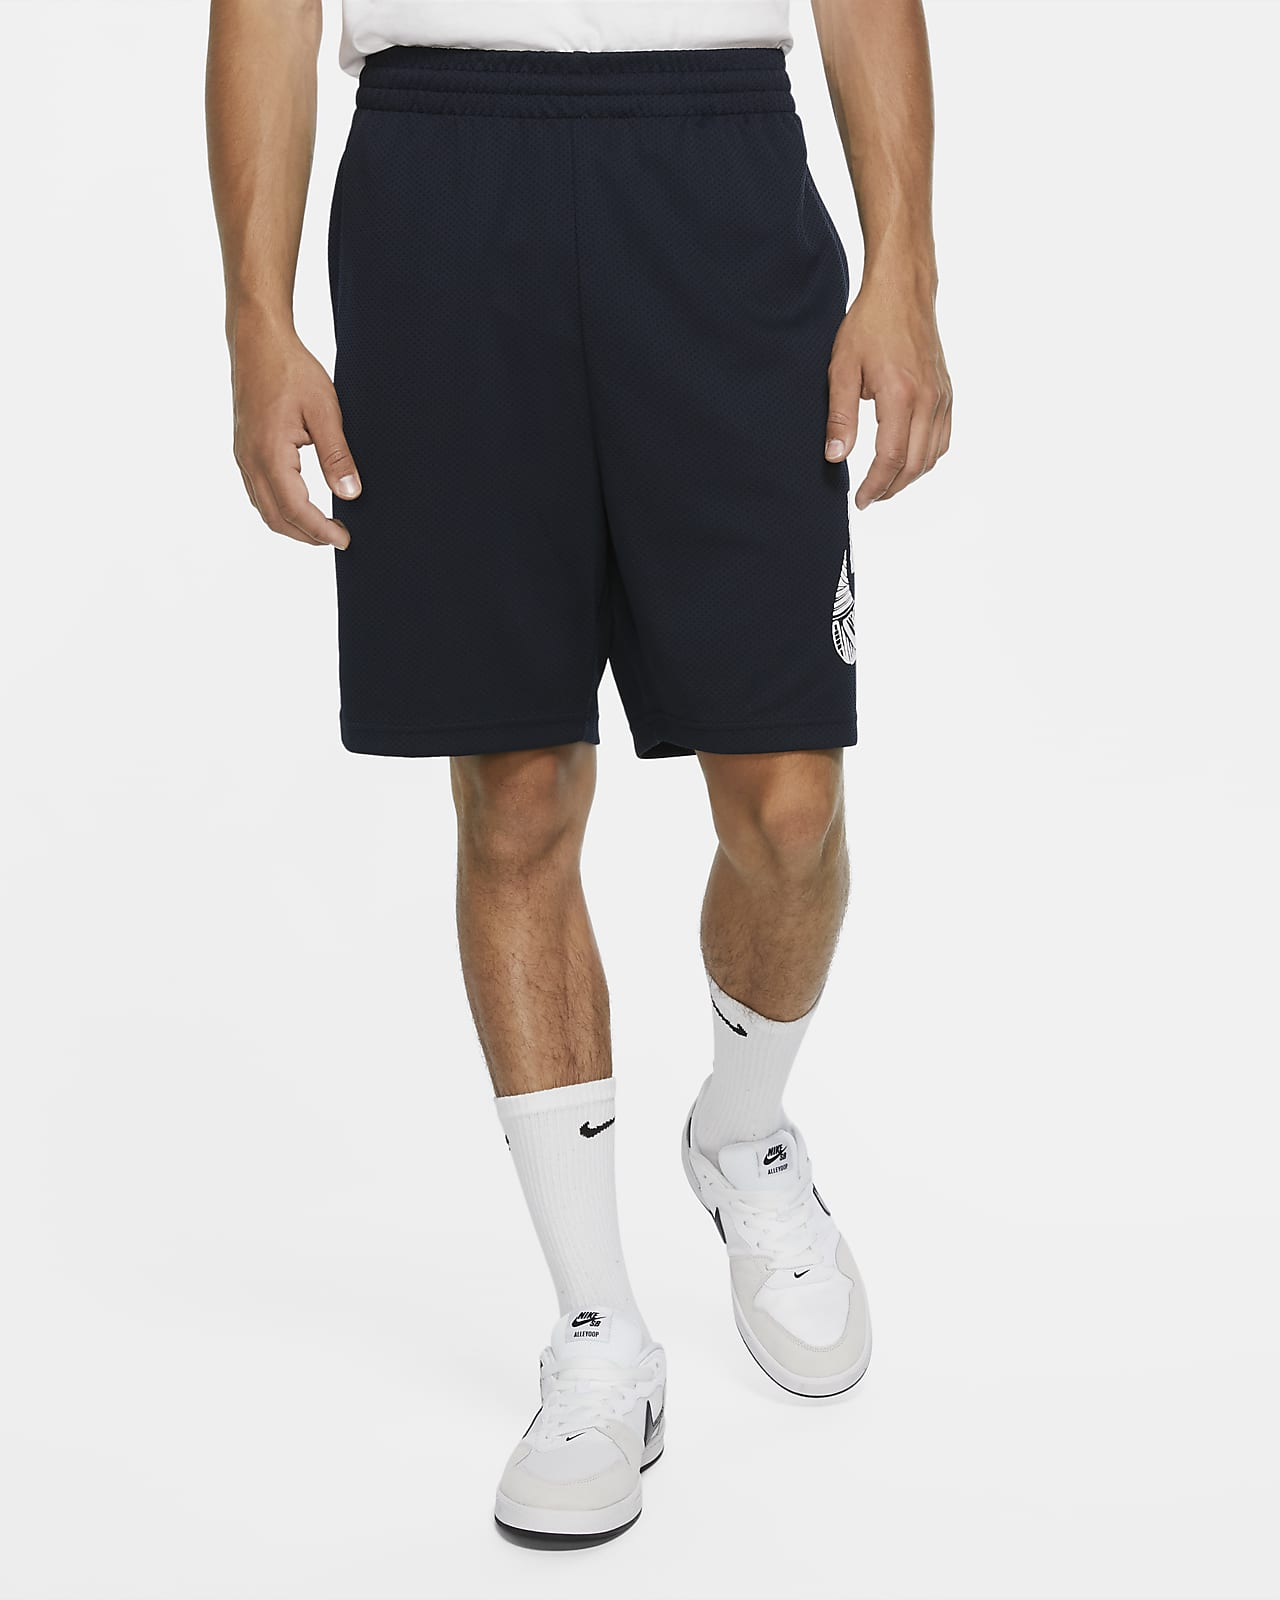 Nike SB Sunday Men's Skate Shorts